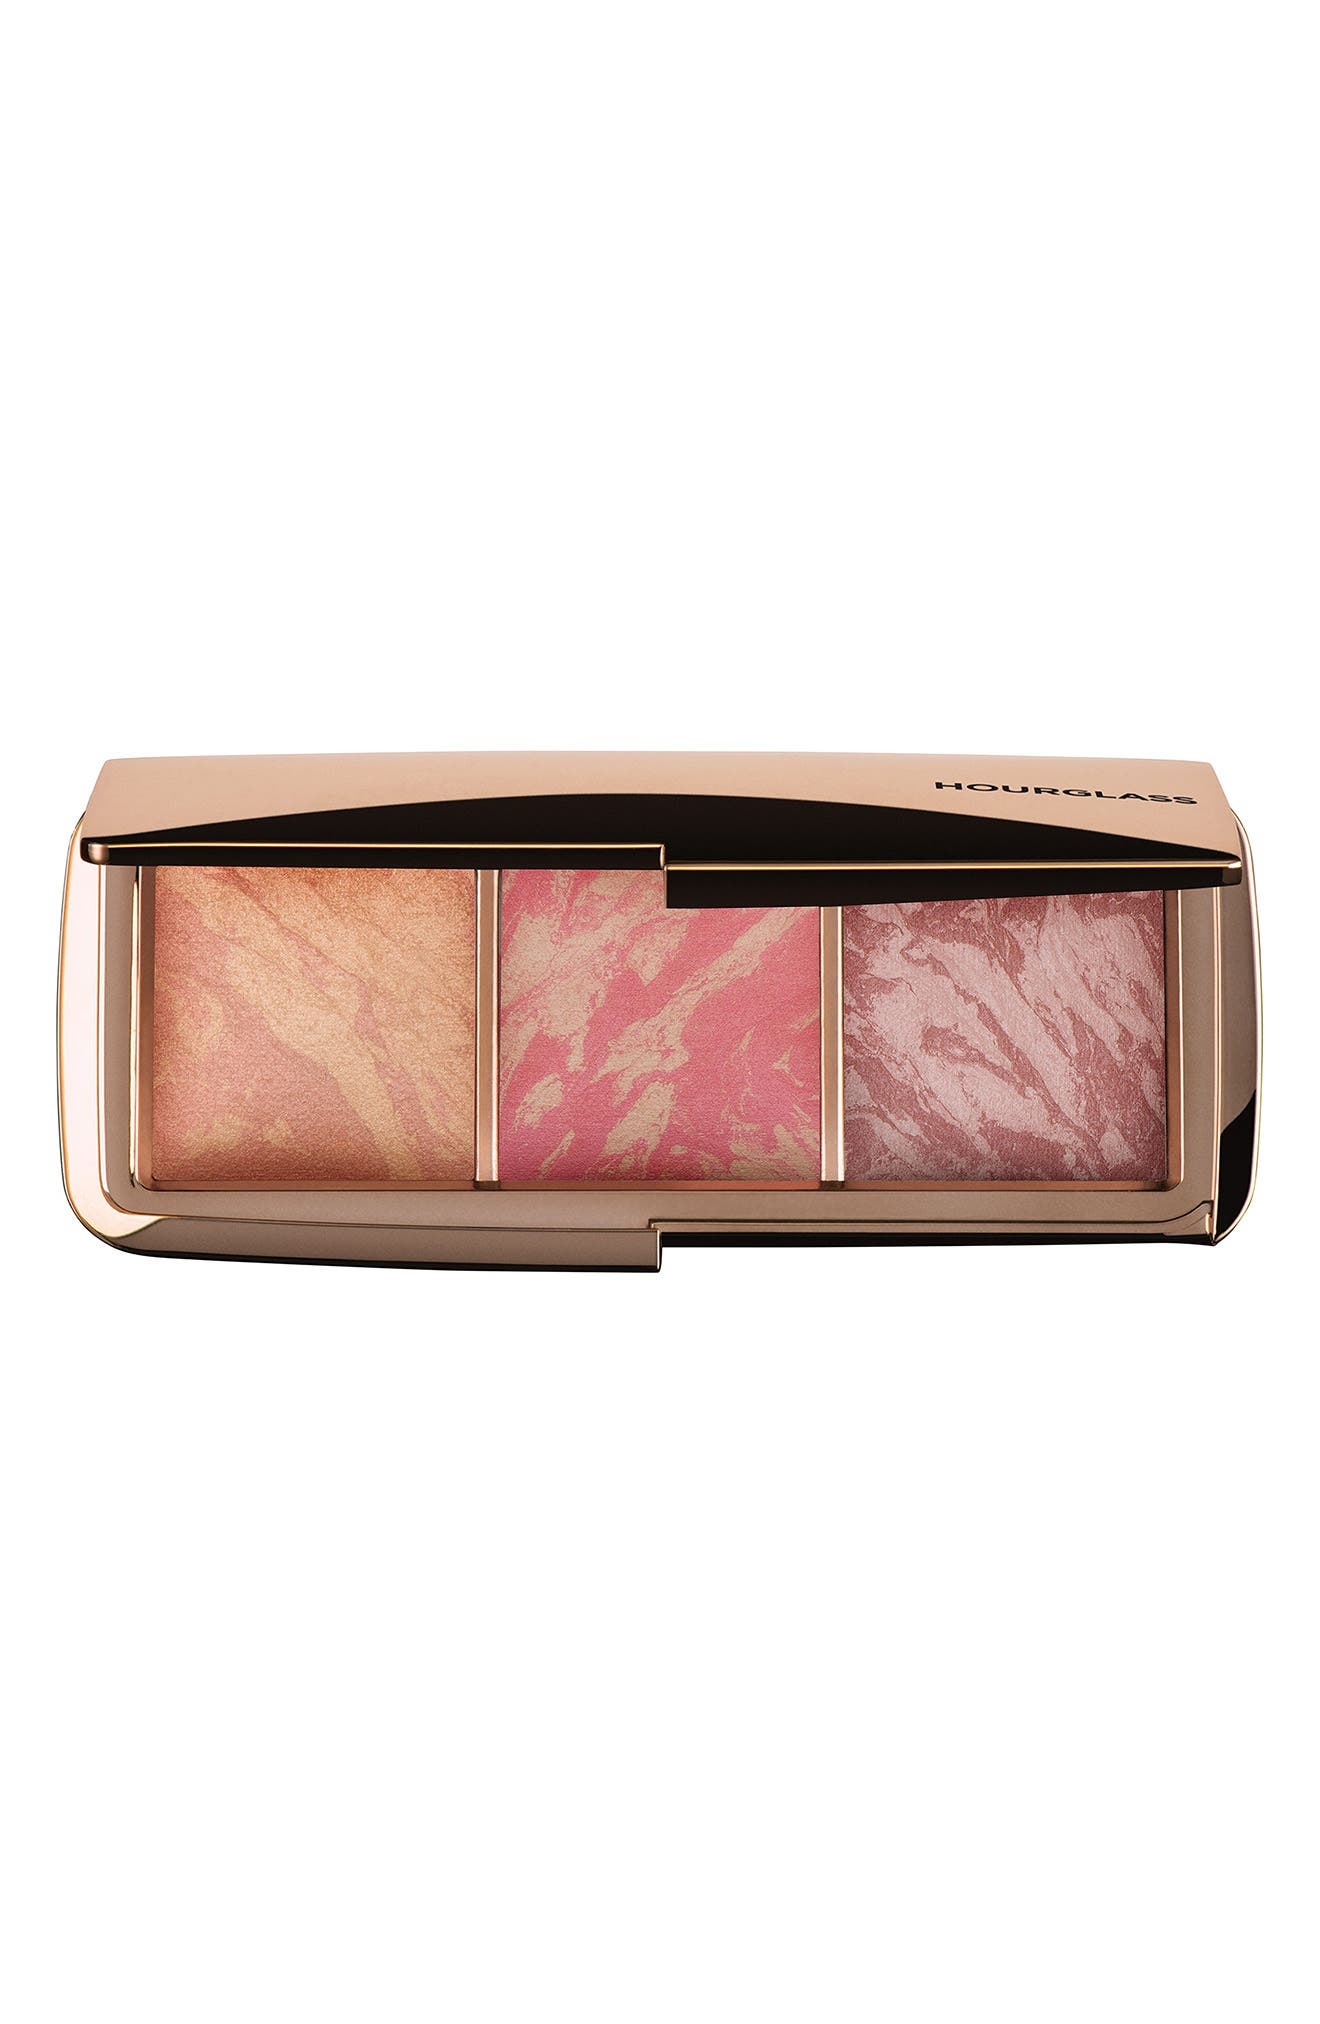 Ambient<sup>®</sup> Lighting Blush Palette,                             Main thumbnail 1, color,                             000